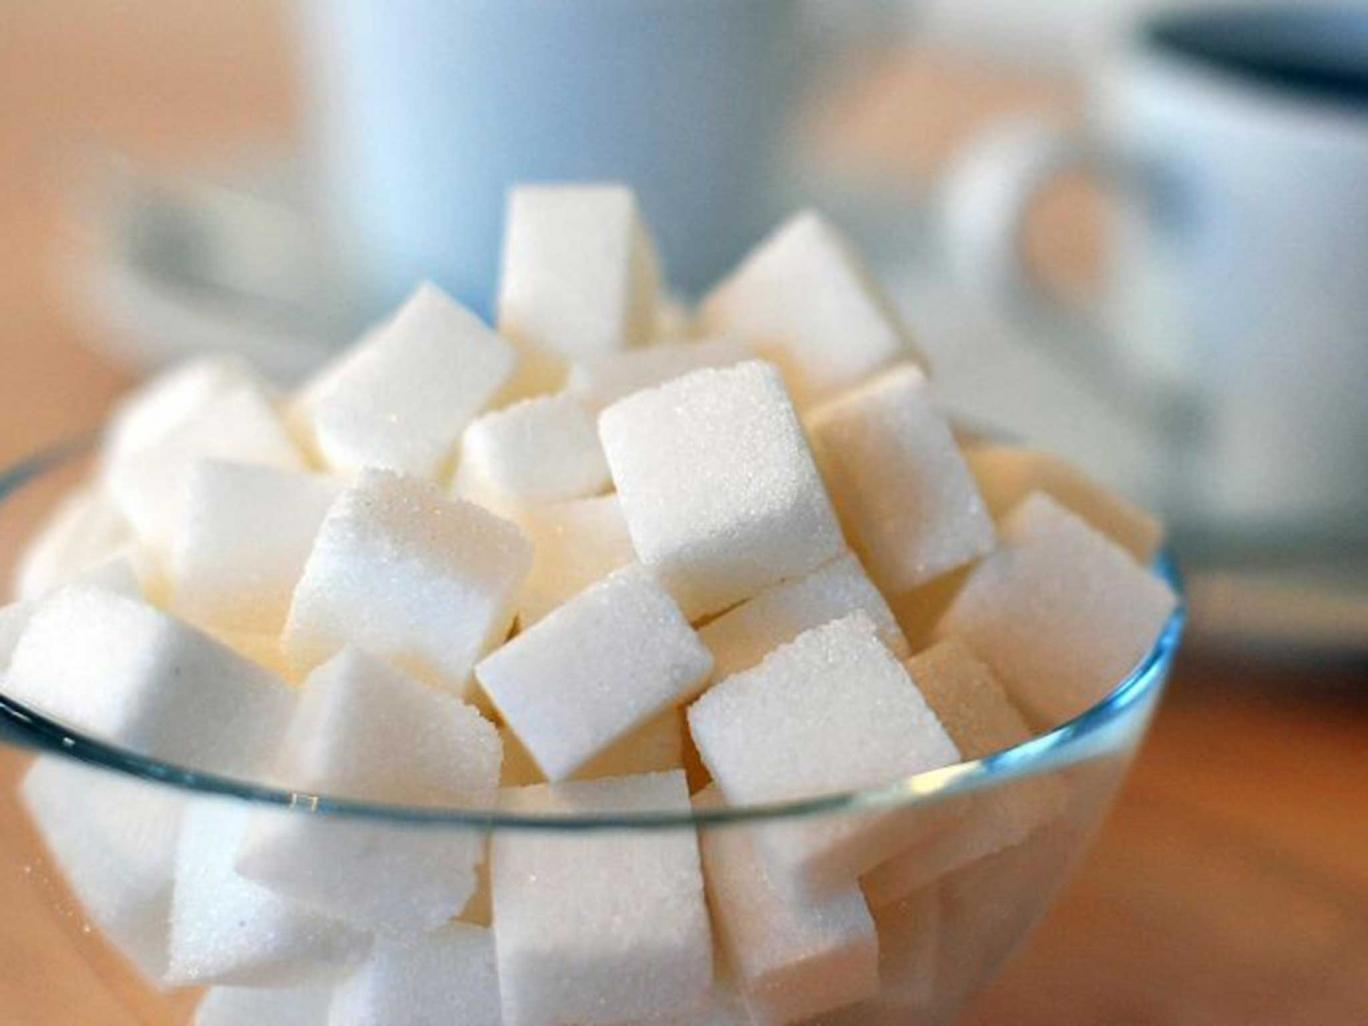 British lawmakers call for sugar tax to tackle childhood obesity